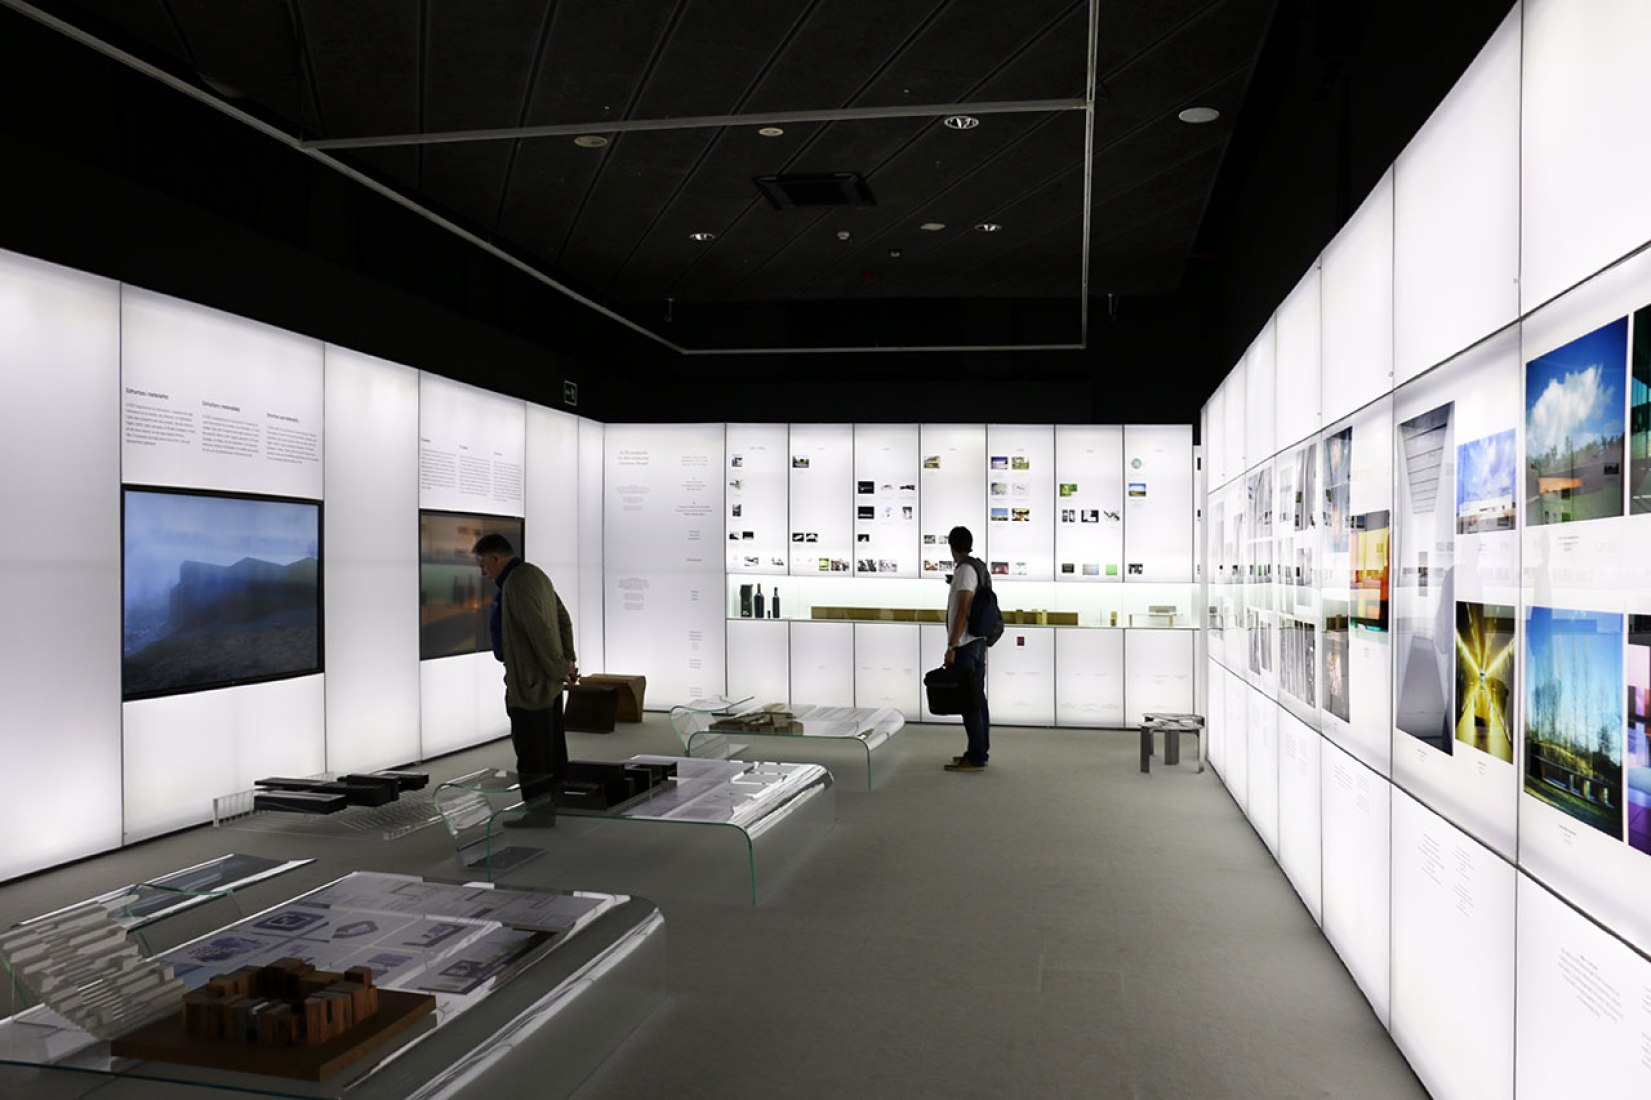 Exhibition RCR Arquitectes 'Shared creativity'. Photography © José Juan Barba / METALOCUS.